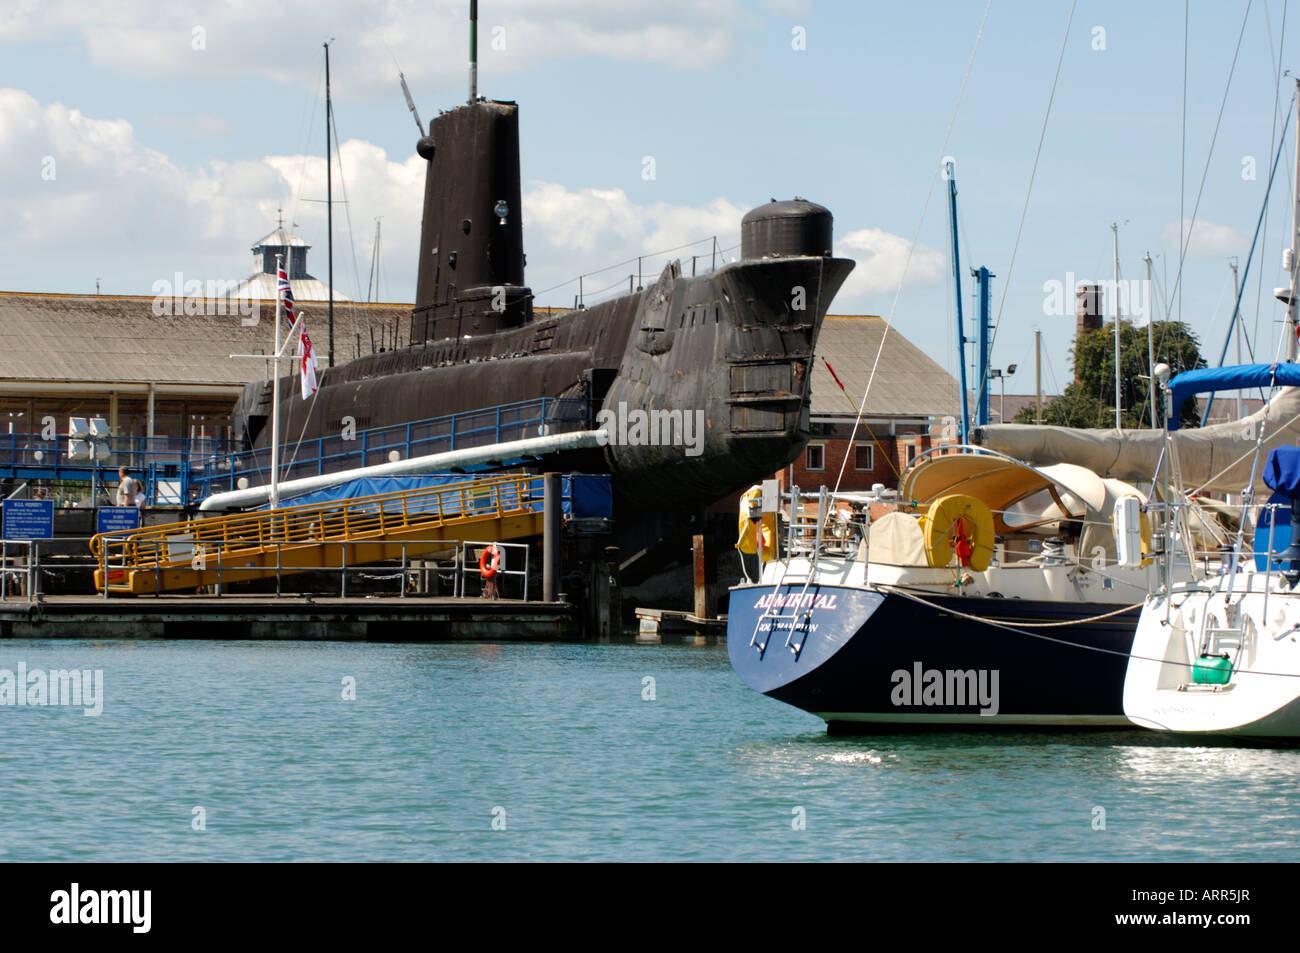 hms alliance the submarine at the royal nay sumariners museum at haslar creek hms dolphin gosport hampshire portsmouth - Stock Image